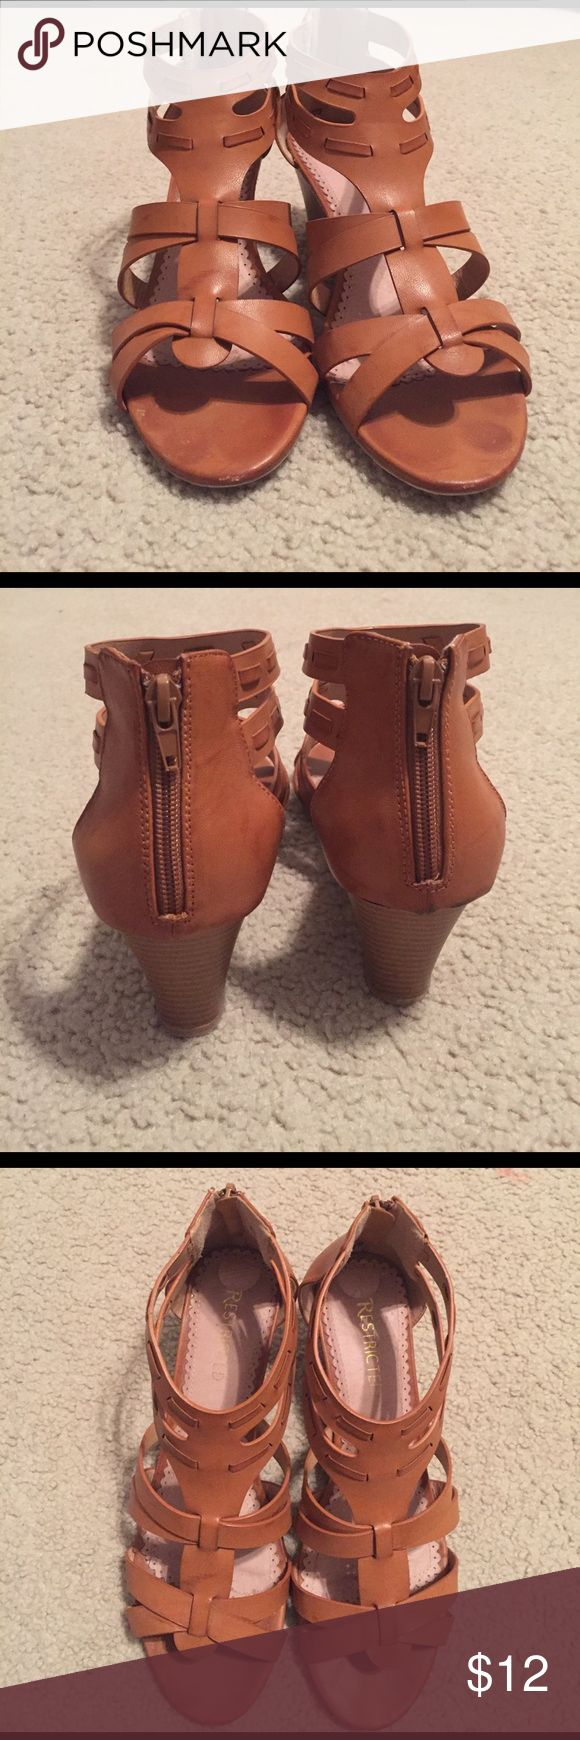 Comfy shoes 👠 These shoes are very comfortable and they have a nice sized heel. Restricted Shoes Wedges